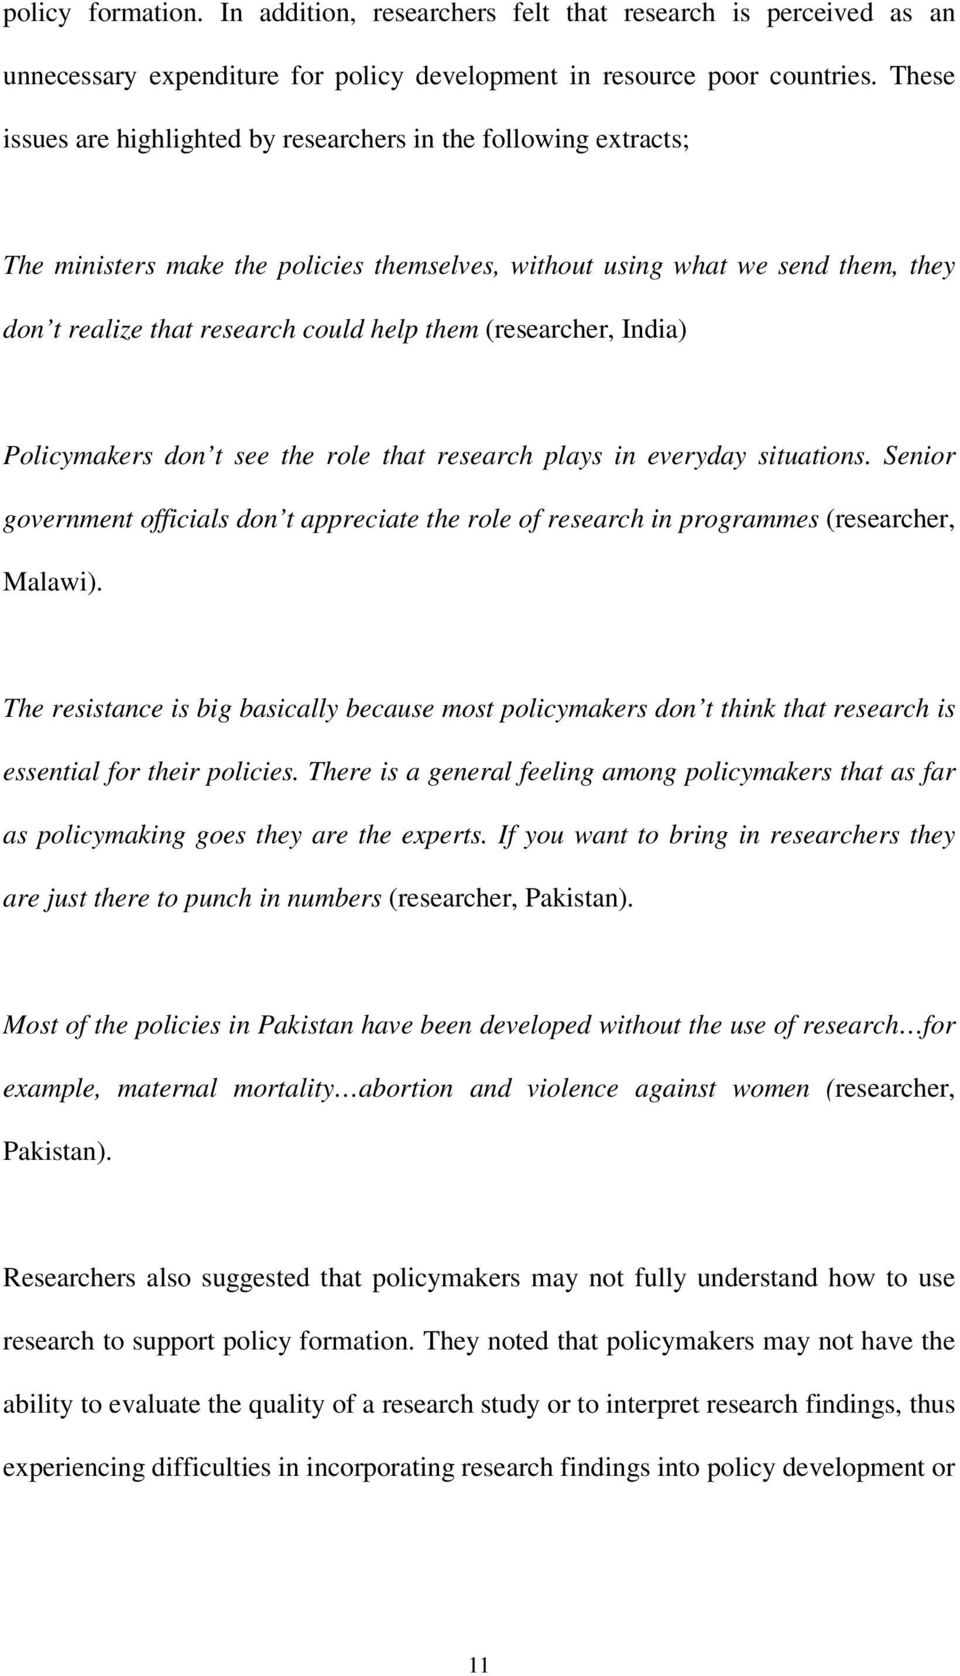 (researcher, India) Policymakers don t see the role that research plays in everyday situations. Senior government officials don t appreciate the role of research in programmes (researcher, Malawi).